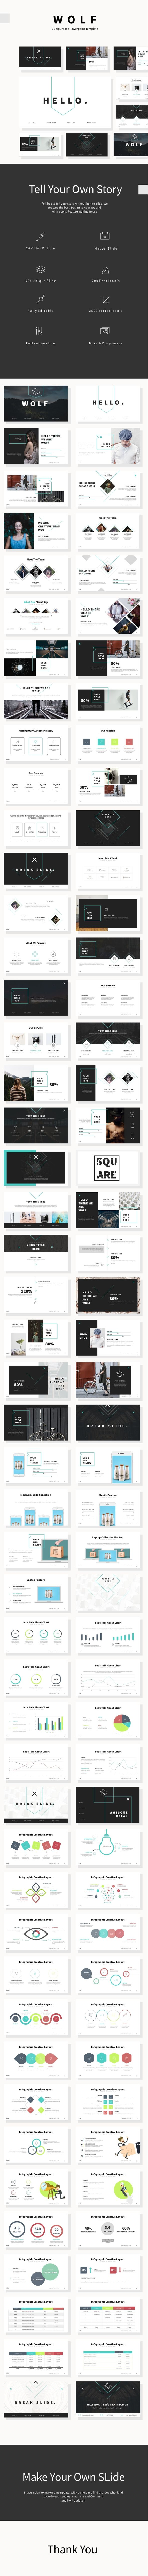 Wolf Multipurpose Theme - Pitch Deck PowerPoint Templates